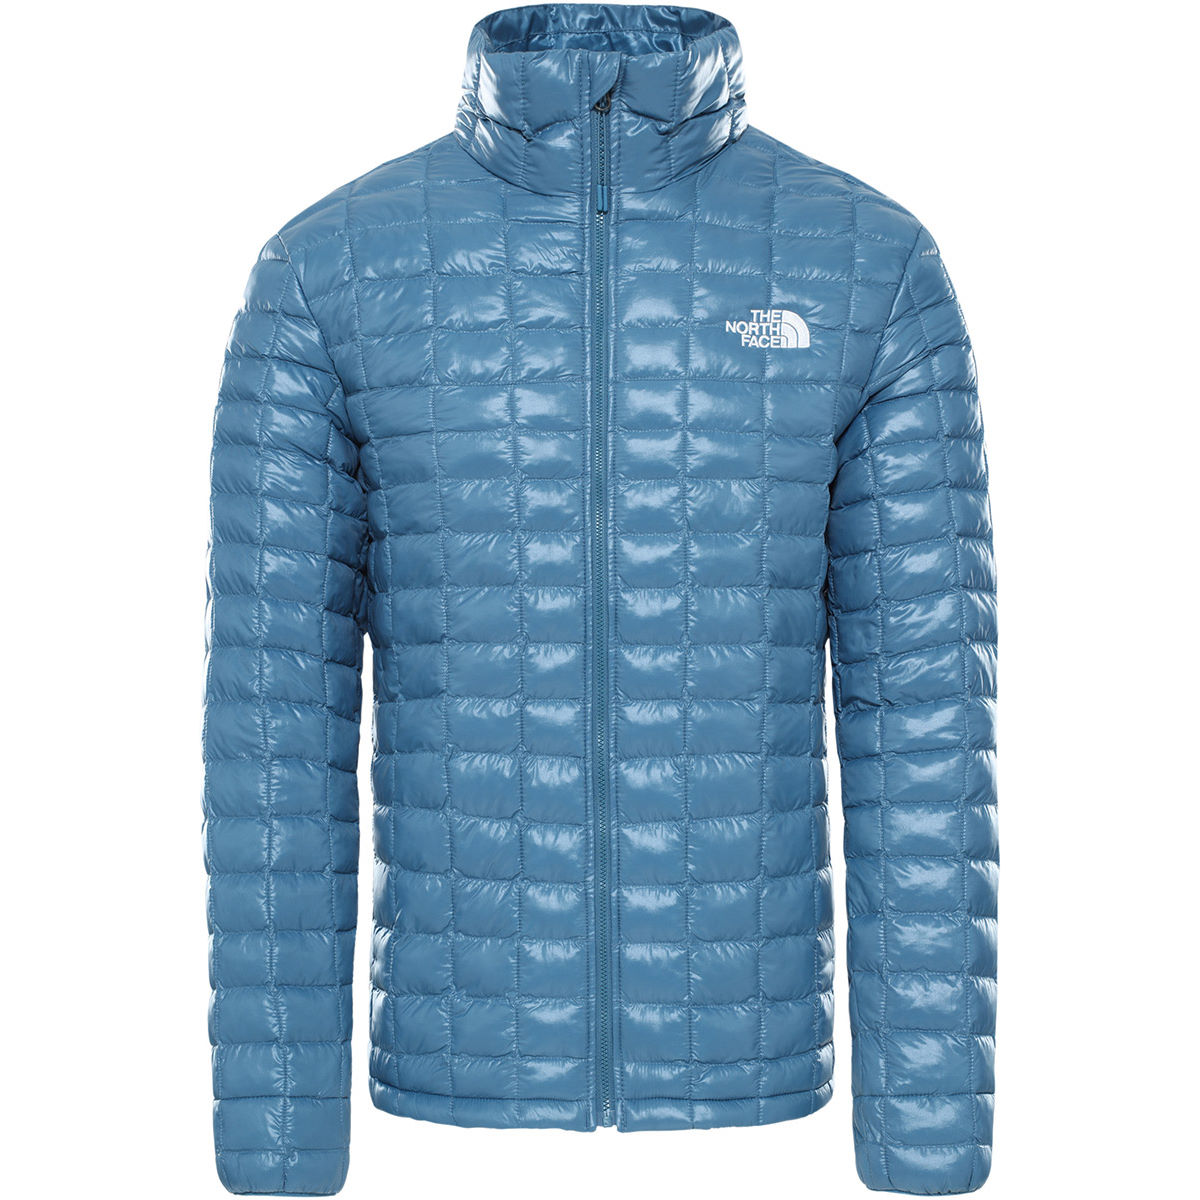 The North Face Thermoball Eco Jacket - Small Mallard Blue  Jackets